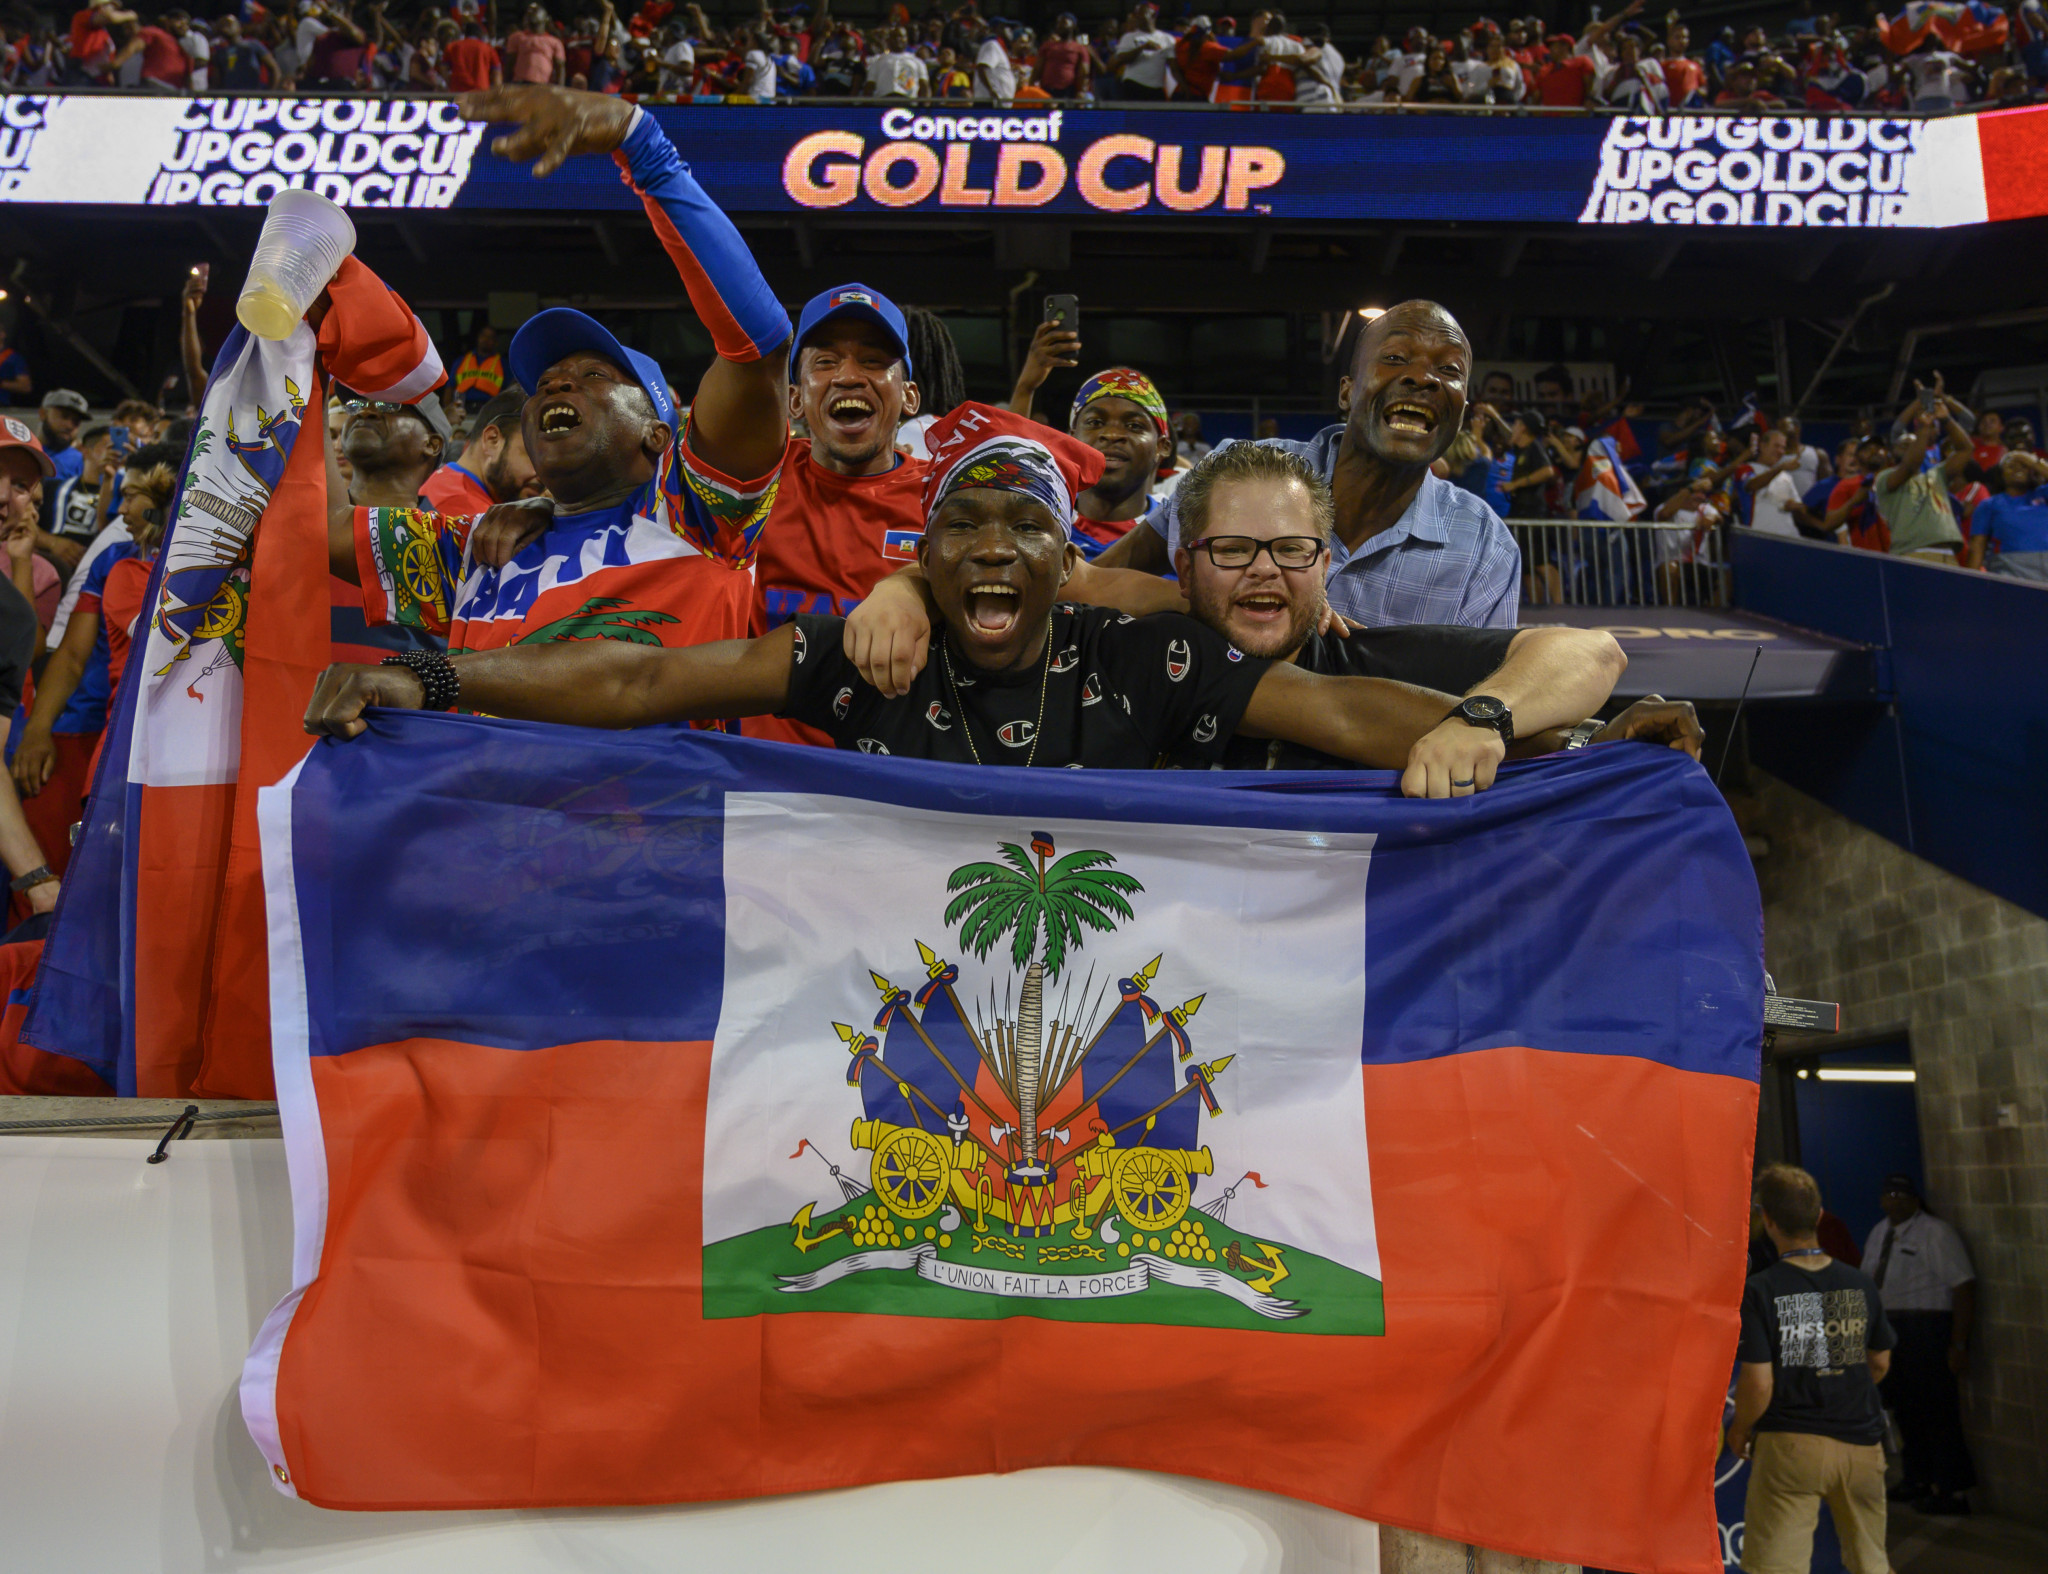 Haiti beat Costa Rica and will play Canada in the last eight of the CONCACAF Gold Cup ©Getty Images